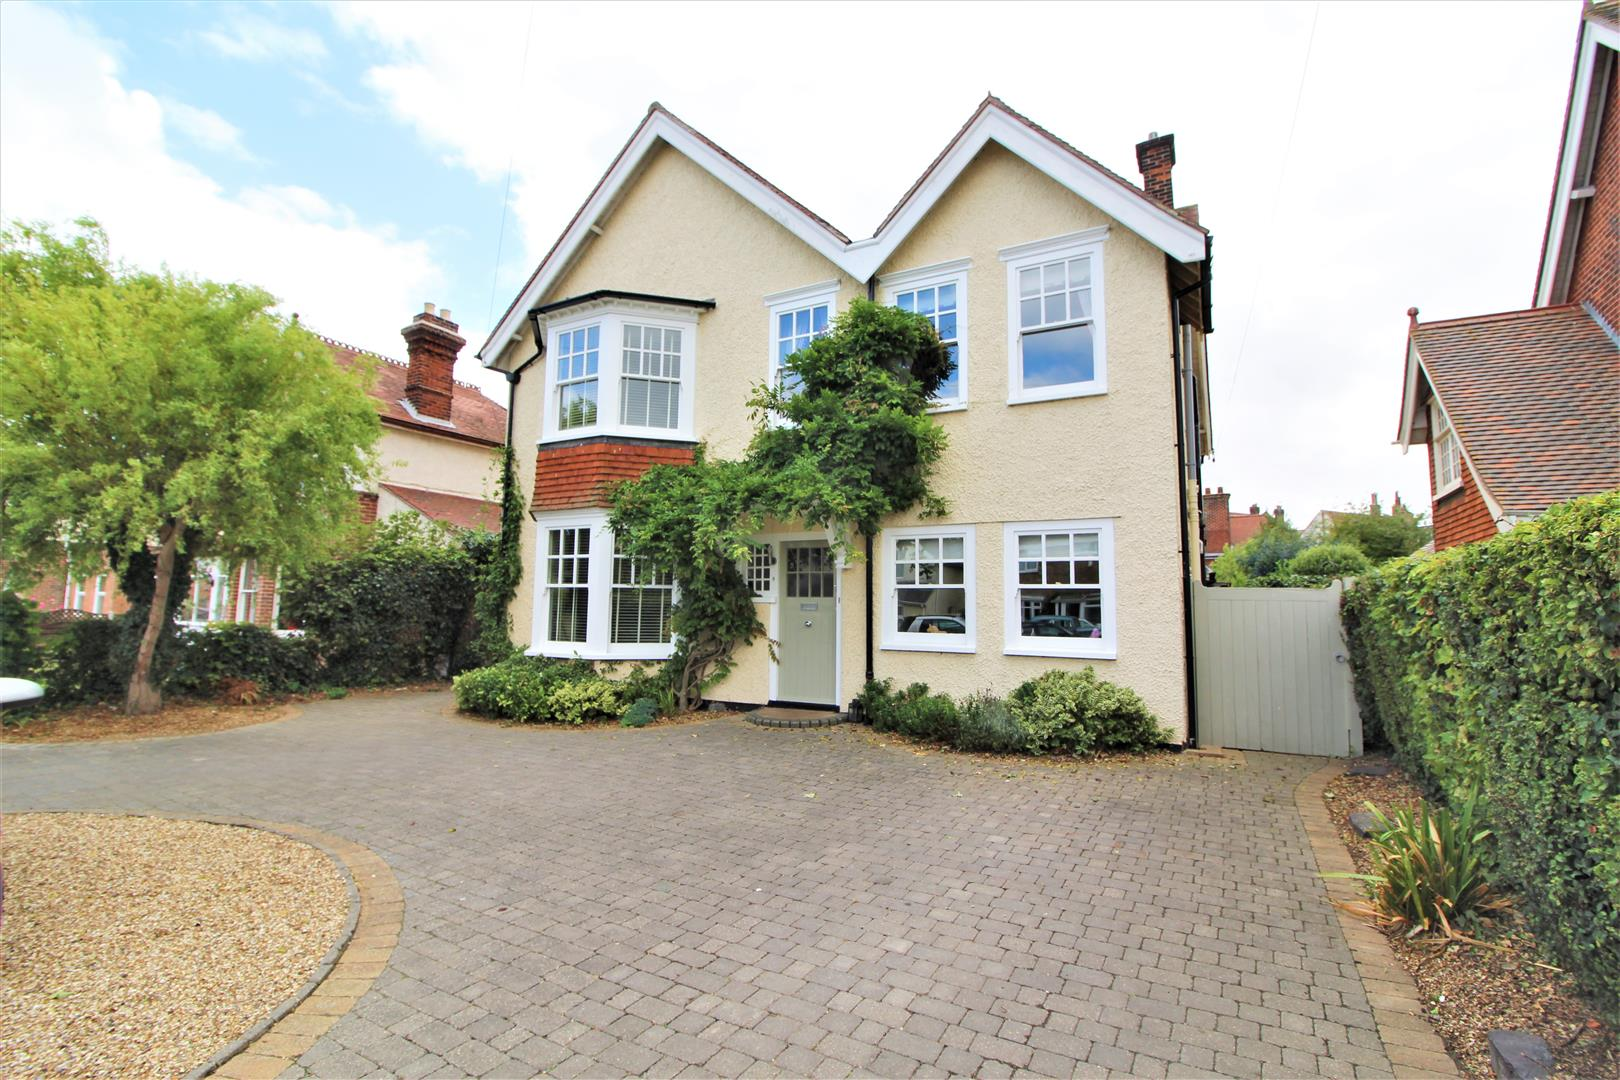 Harold Grove, Frinton-On-Sea, Essex, CO13 9BD